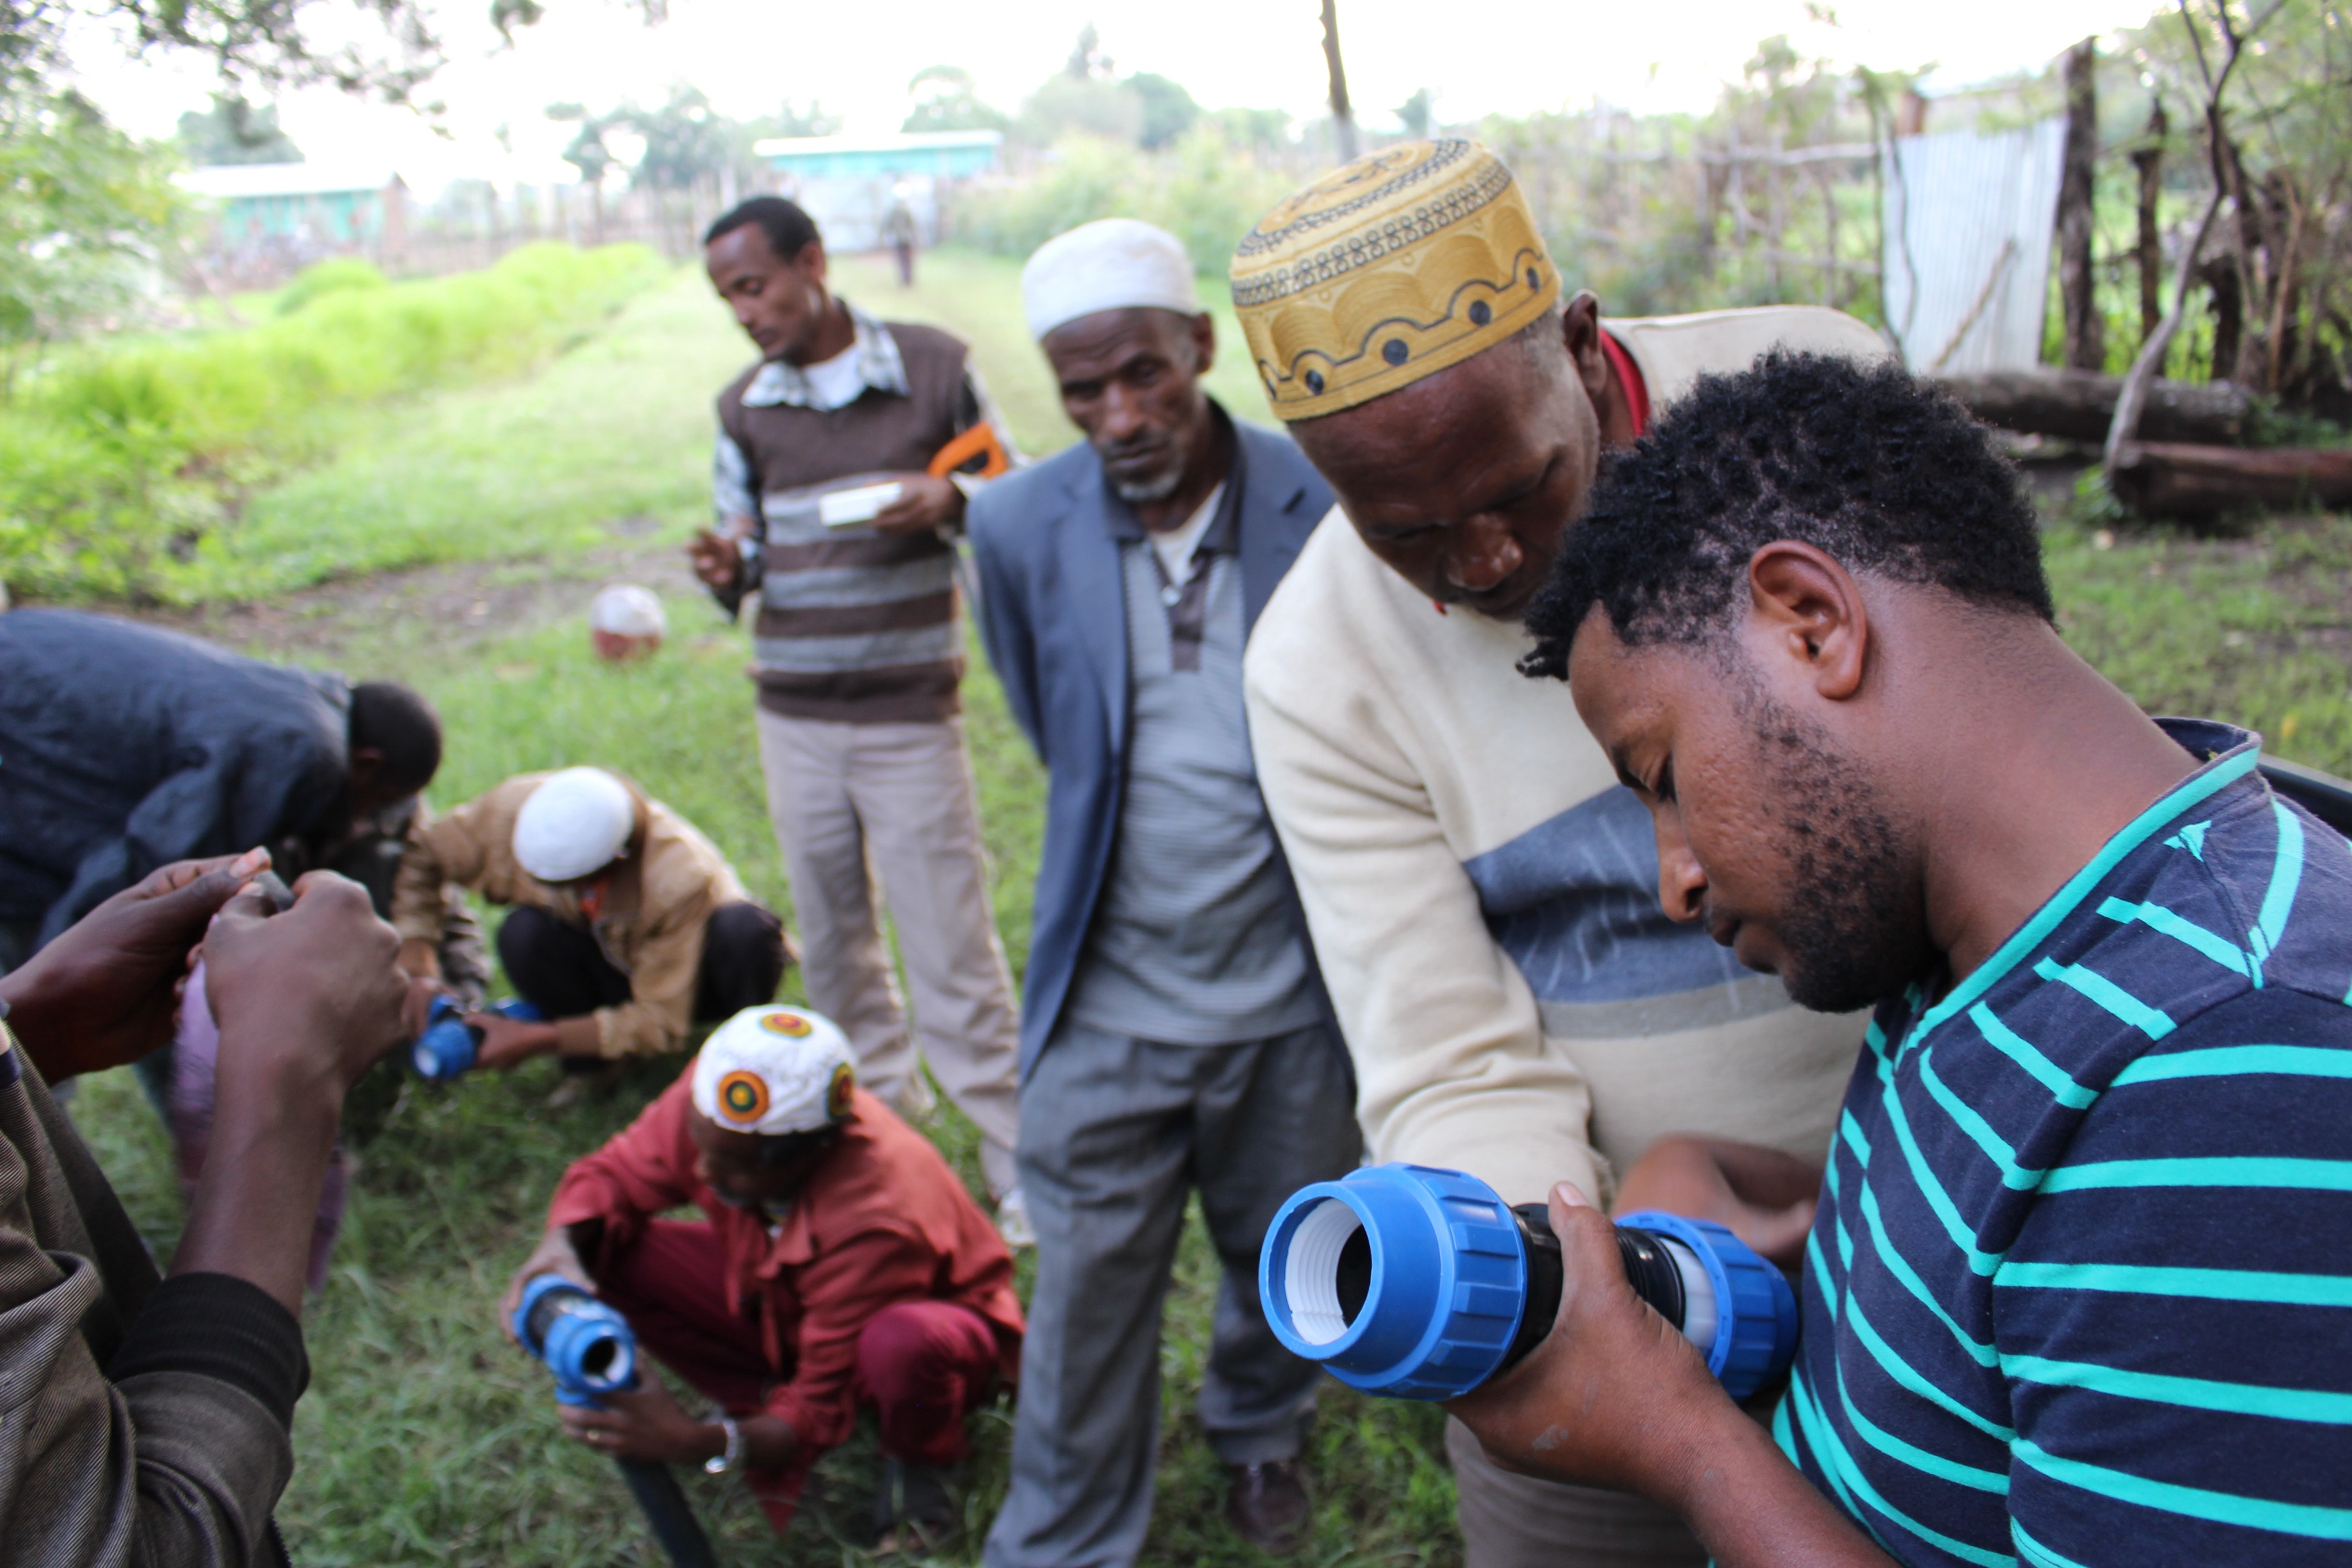 Residents of Wita, a small rural community three hours south of Addis Ababa, Ethiopia's capital, examine infrastructure that will be used to improve the reliability of their water supply. Photo credit: Triple Bottom Line (3BL) Enterprises